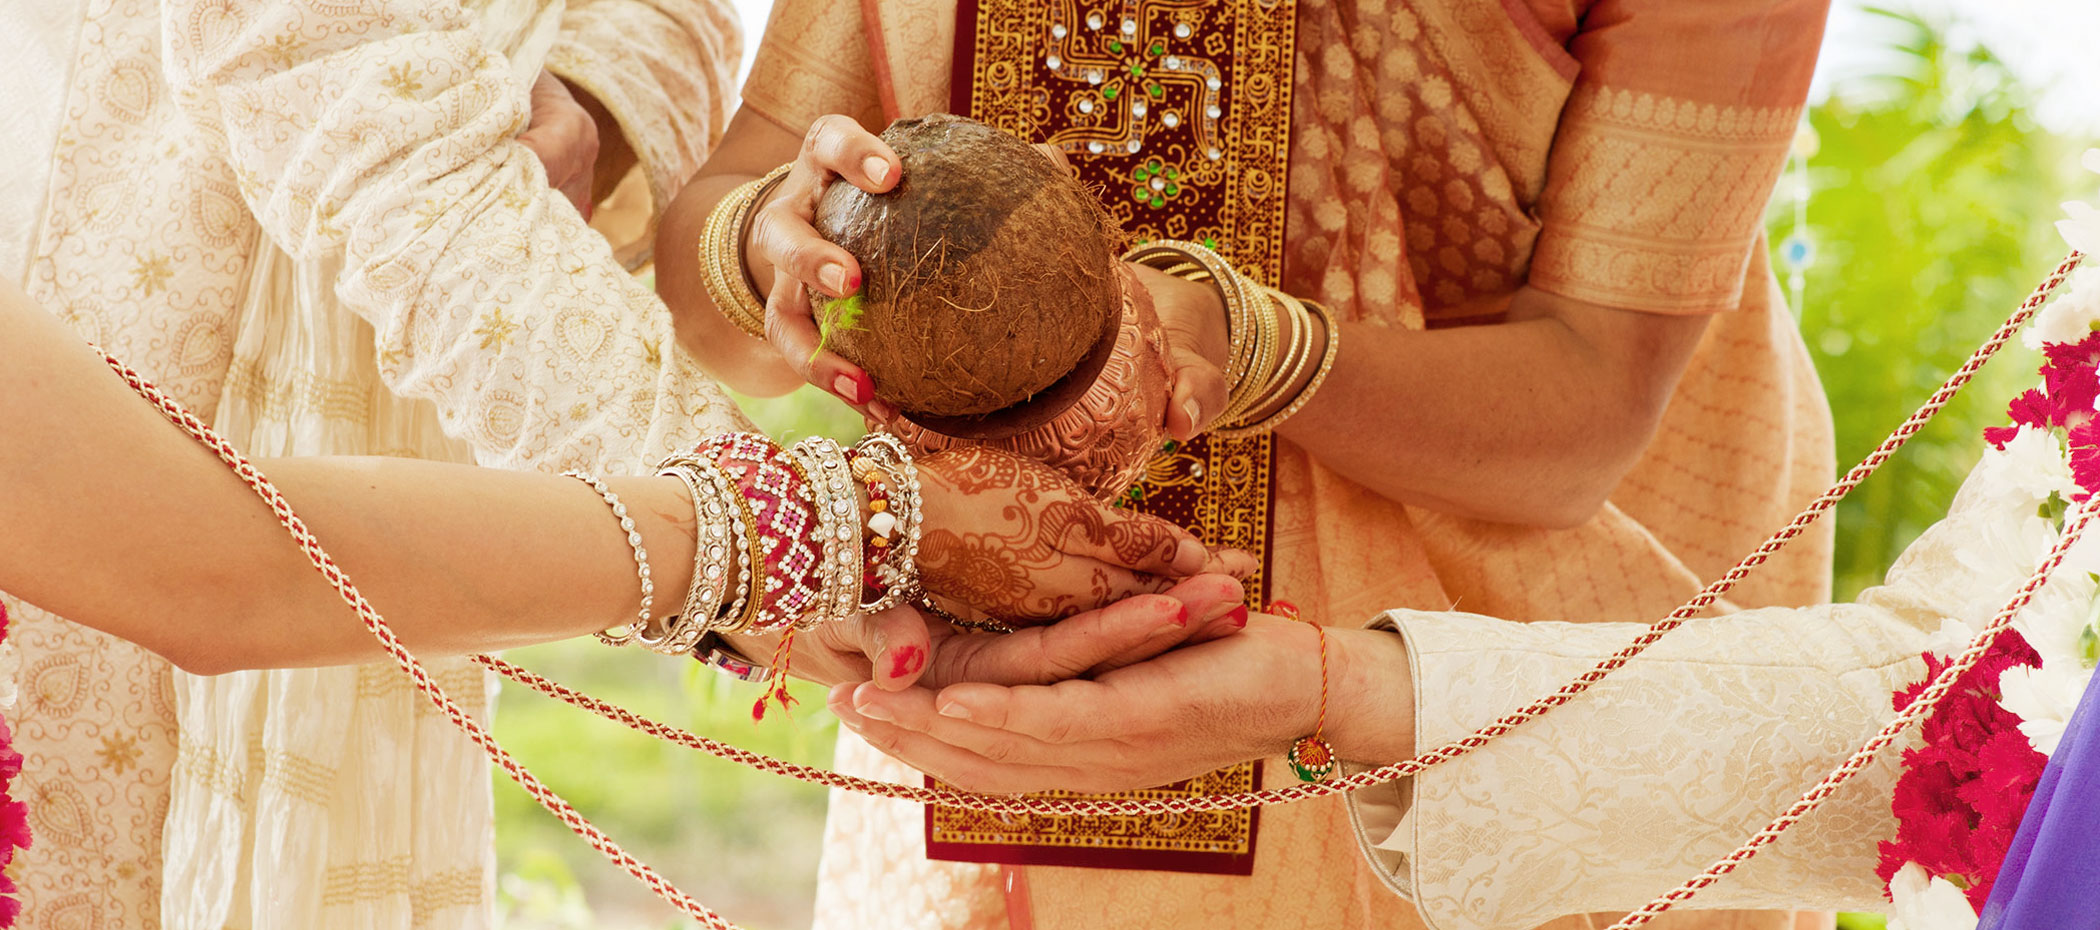 MountainOccasions_SouthAsianWedding.jpg